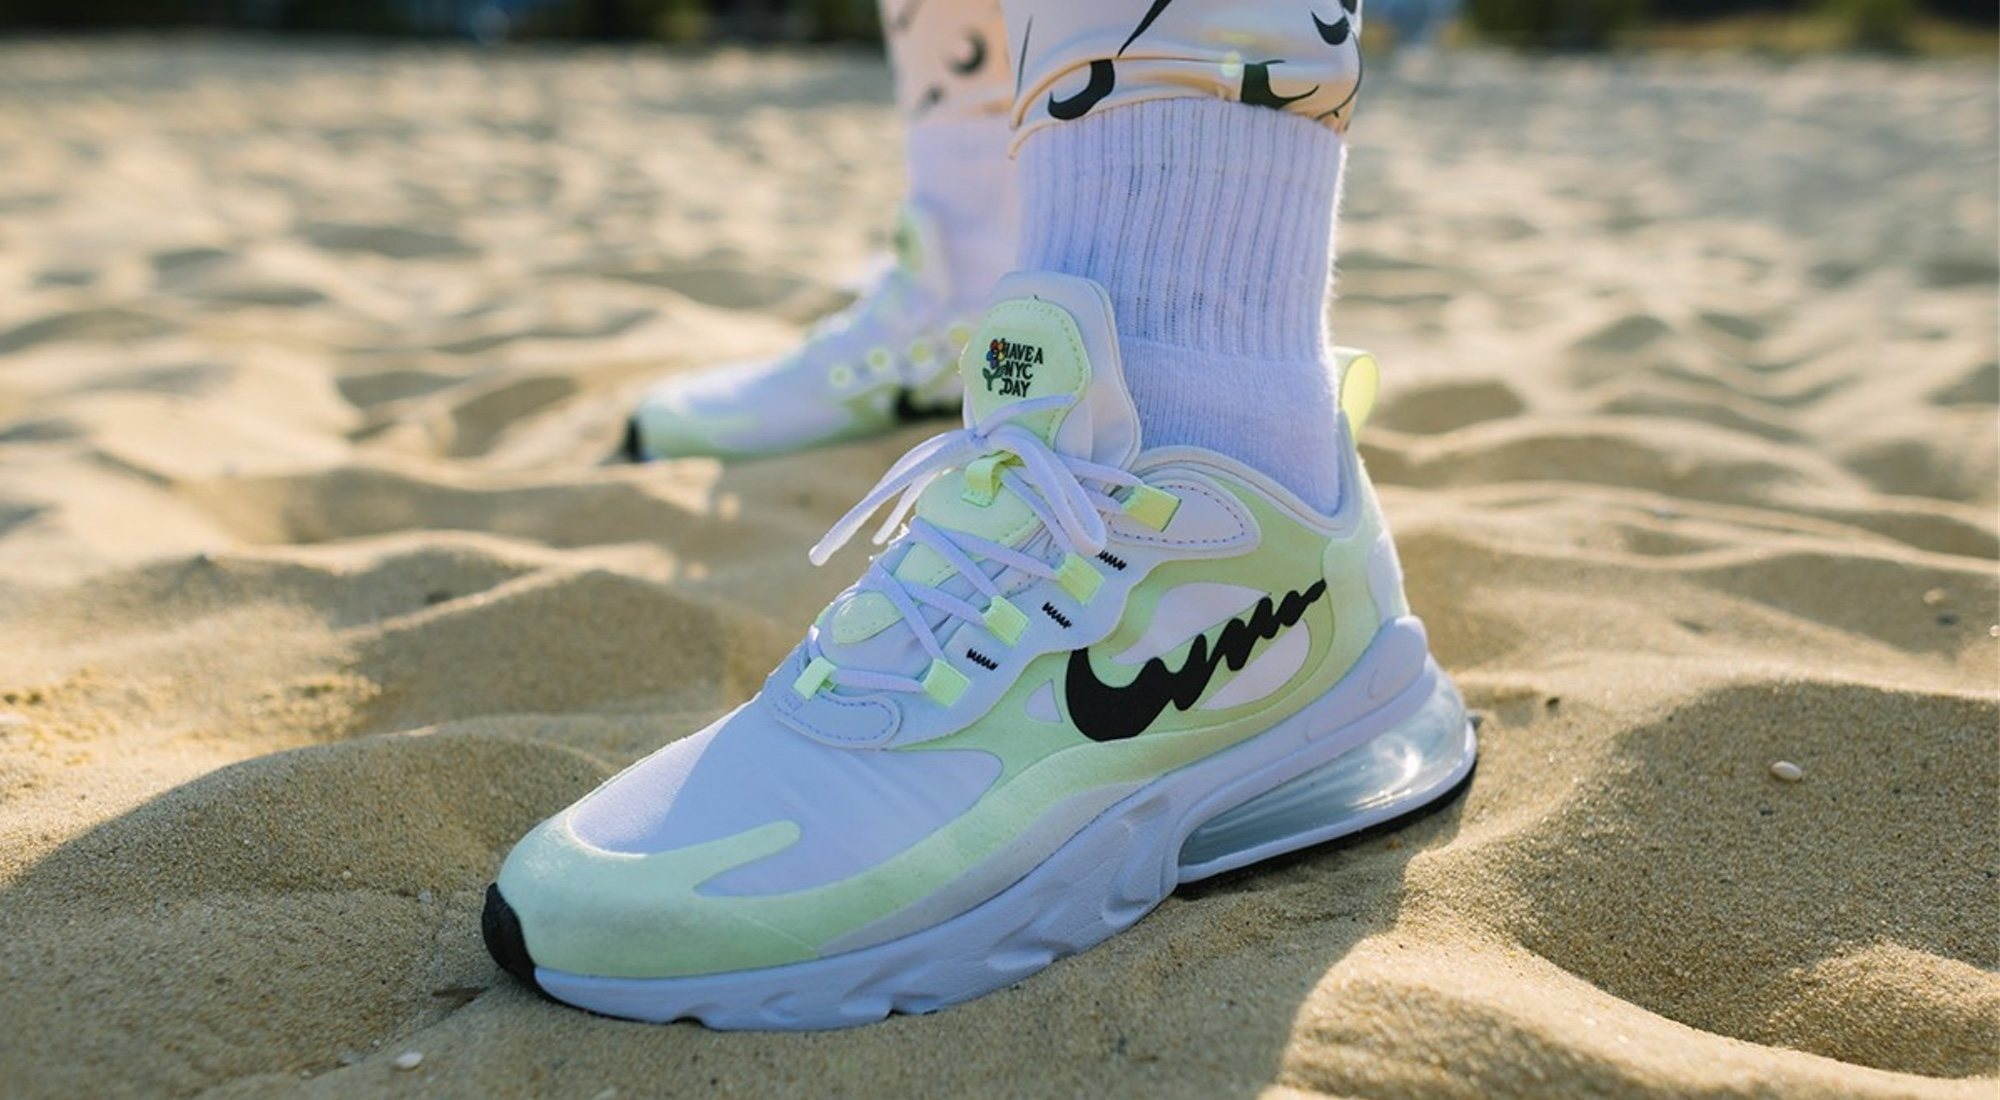 Nike Air Max 270 React 'In My Feels': la salud mental es